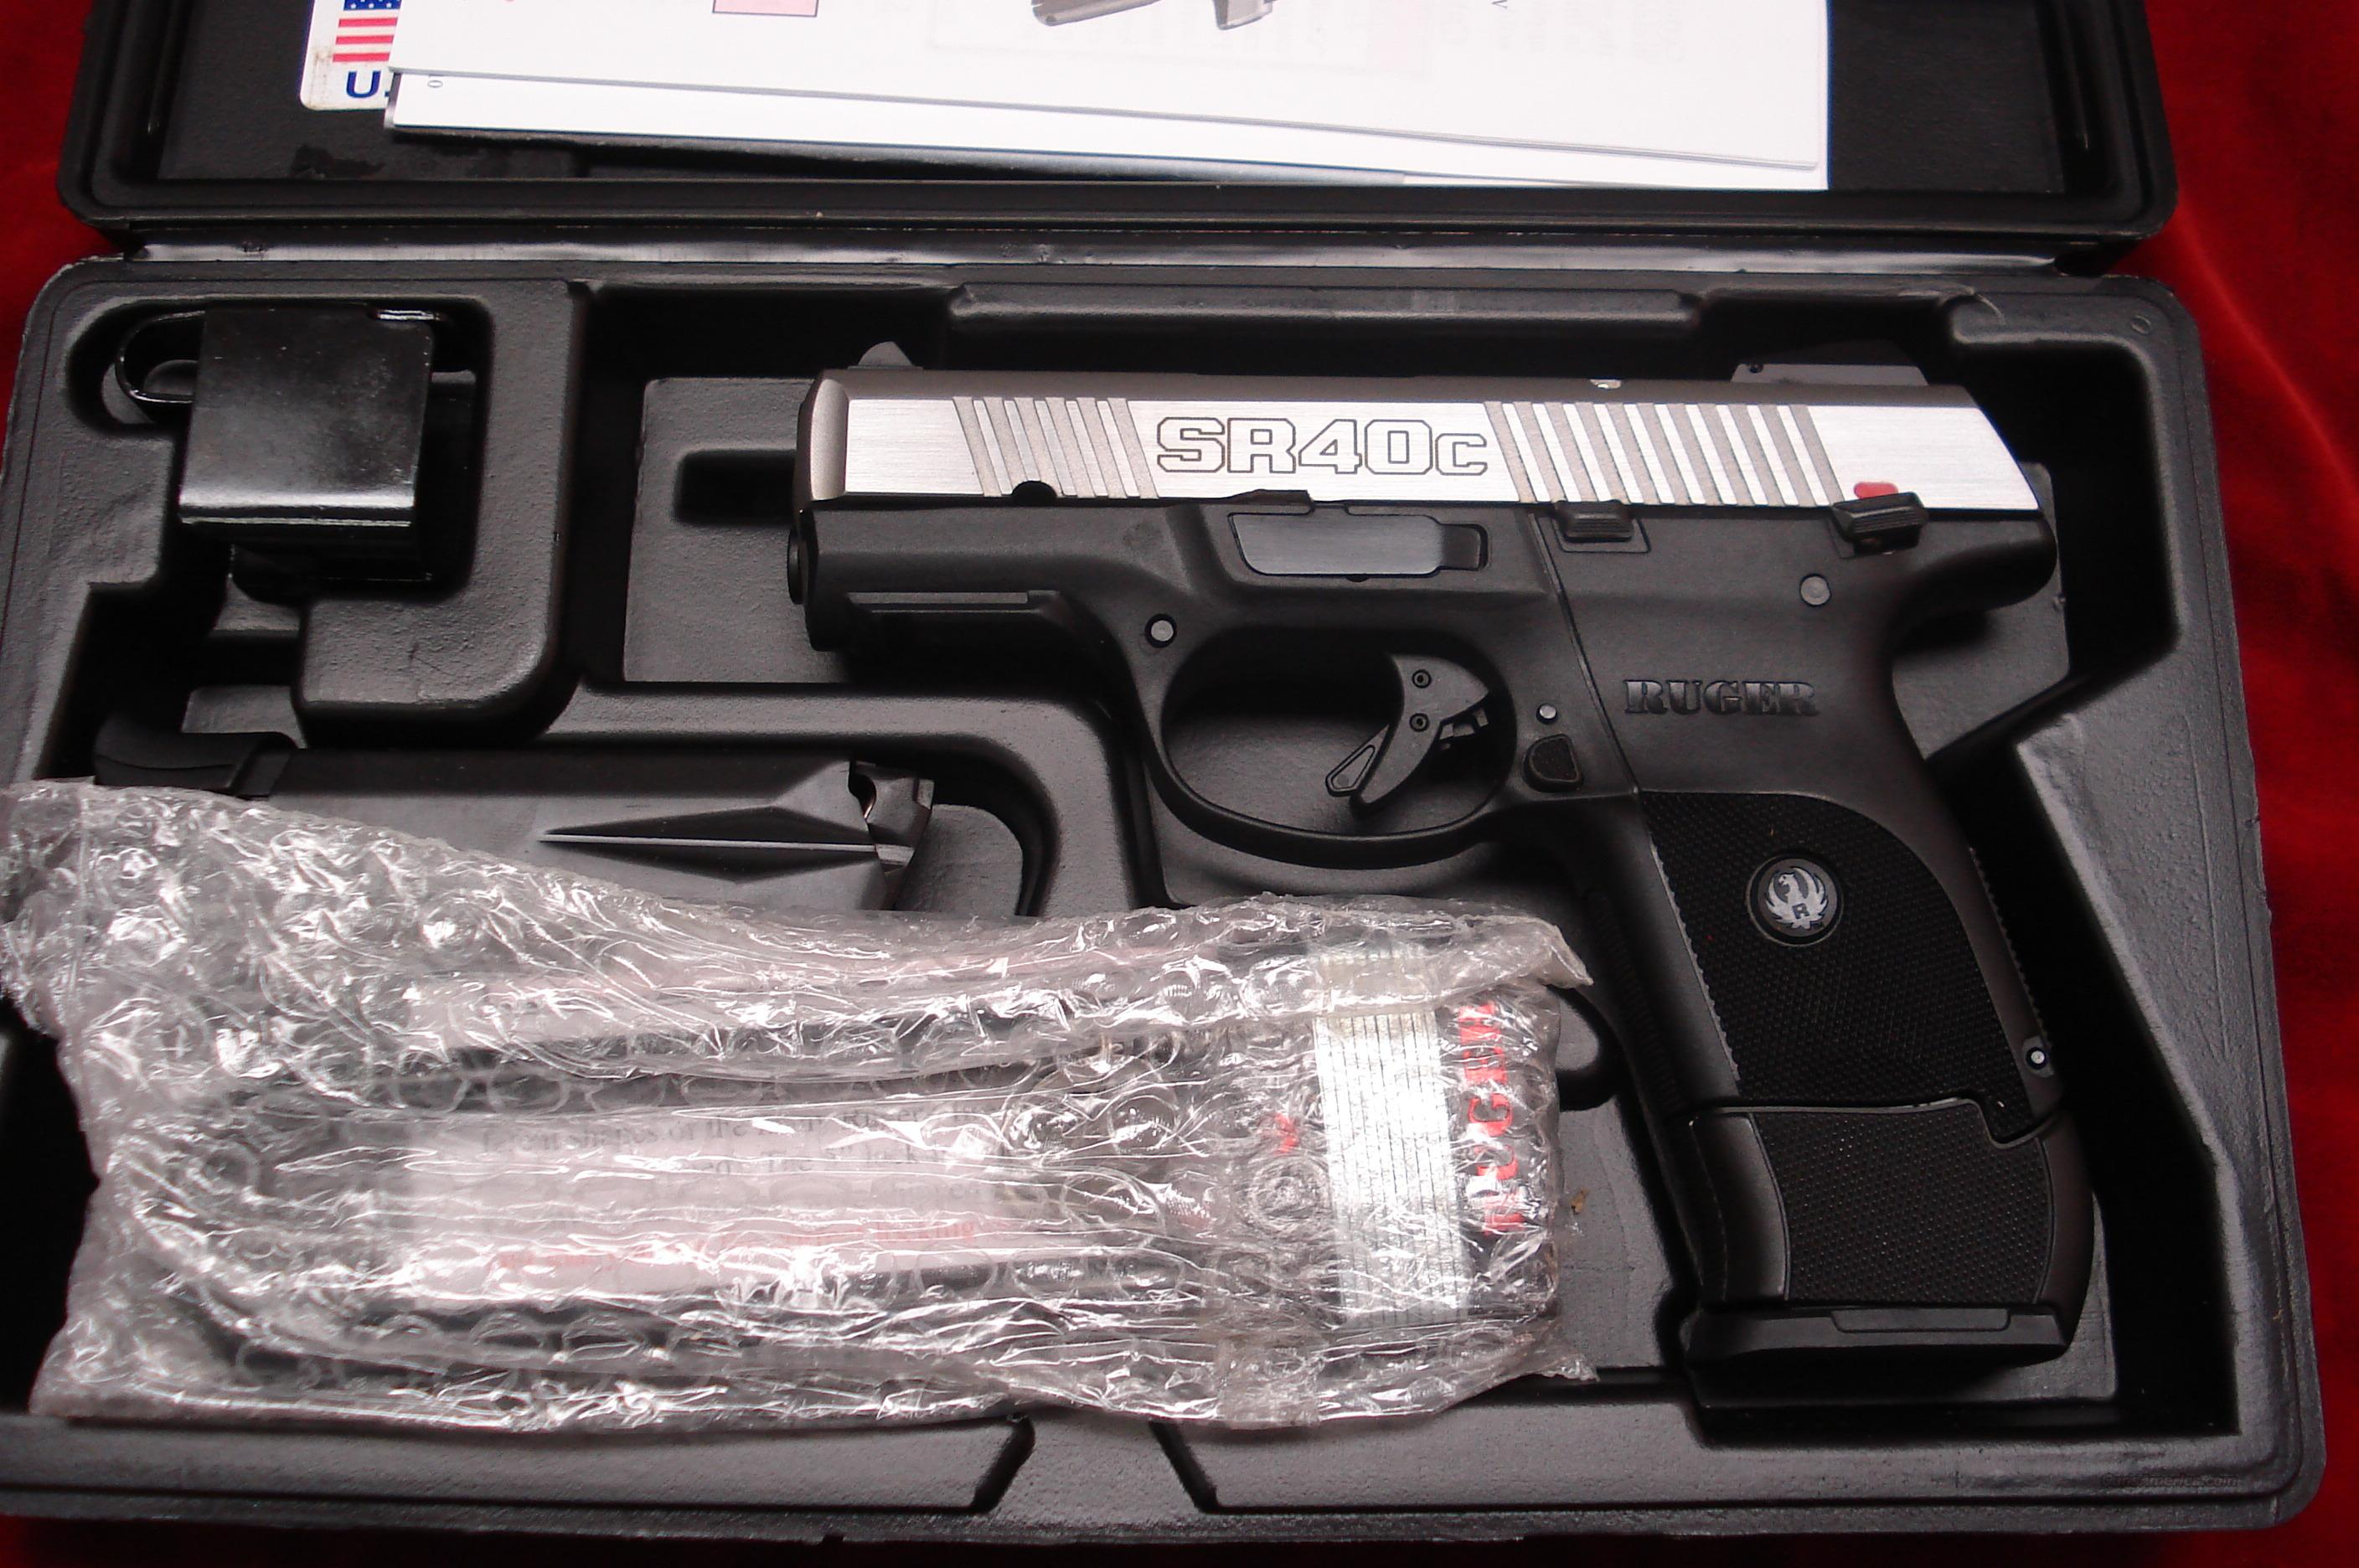 RUGER SR40C (COMPACT) STAINLESS NEW (IN STOCK)! (KSR40C)  Guns > Pistols > Ruger Semi-Auto Pistols > SR9 & SR40